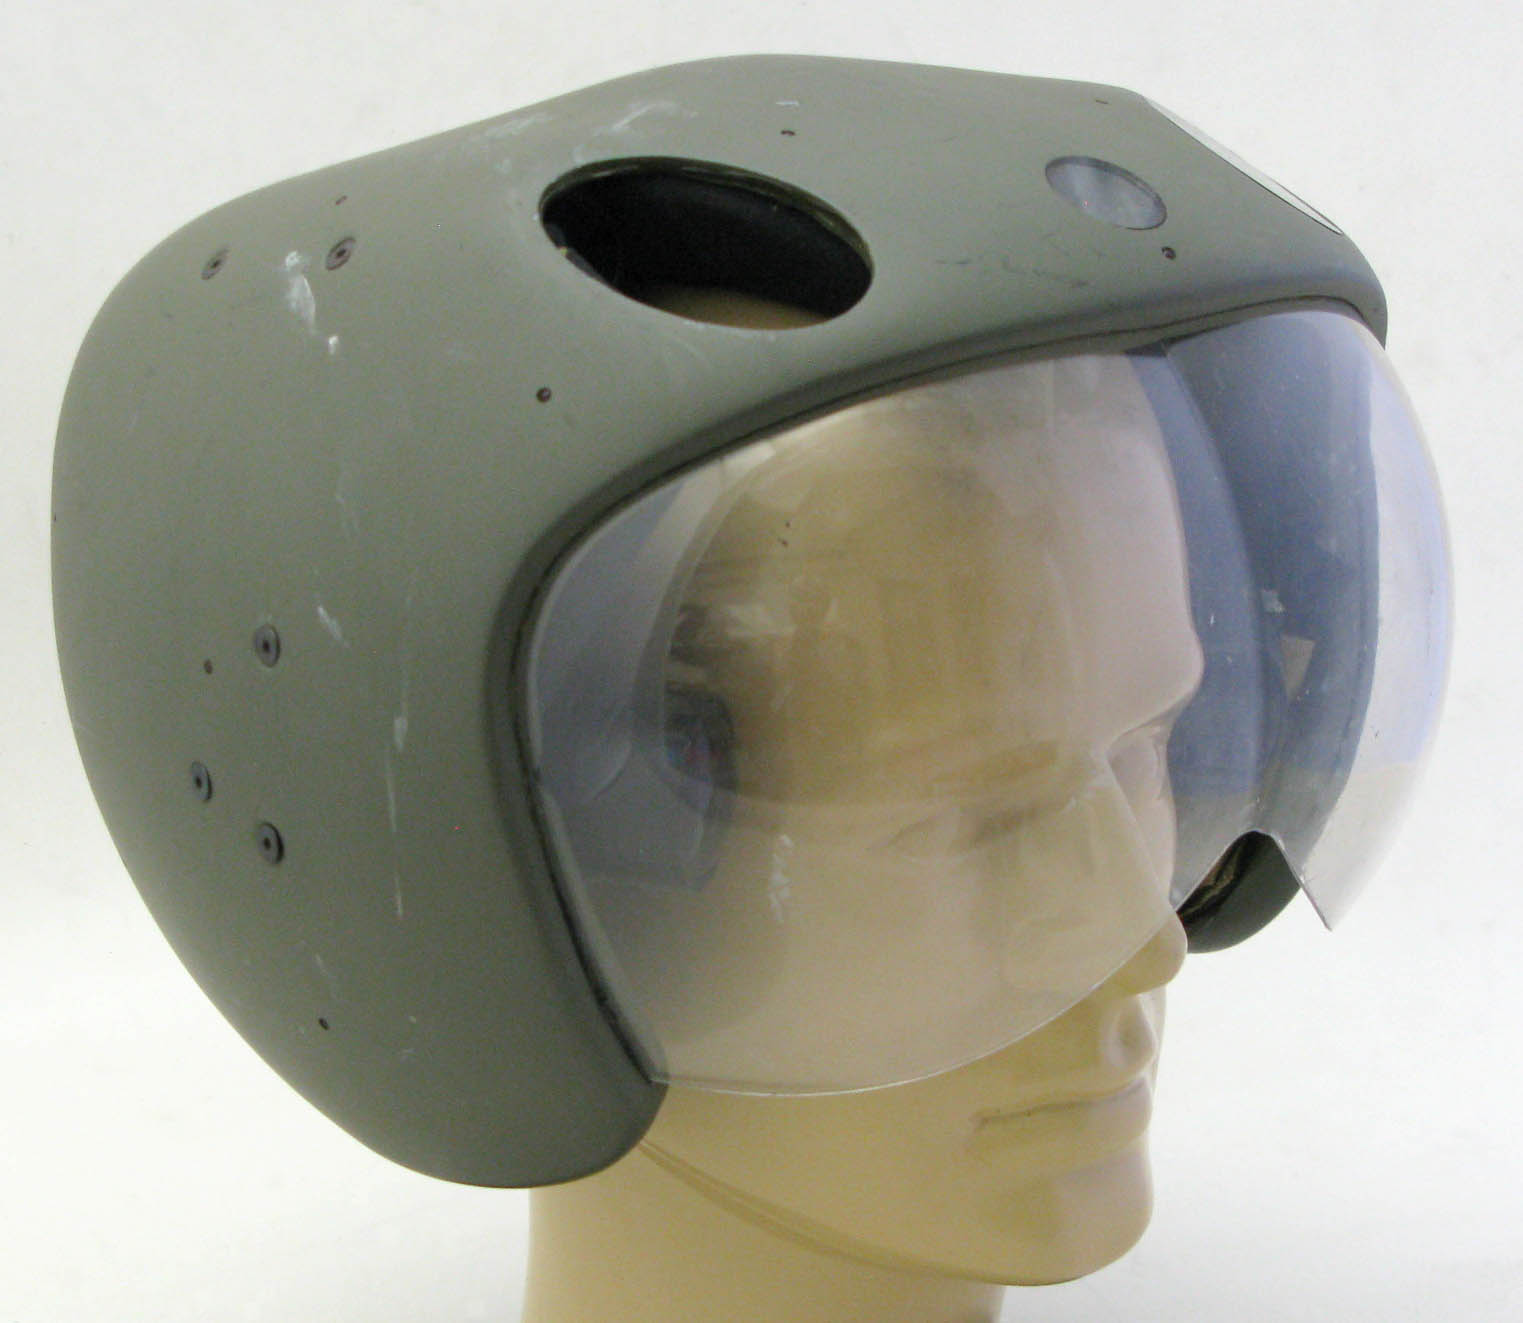 Gentex Helmet Mounted Display (space model)